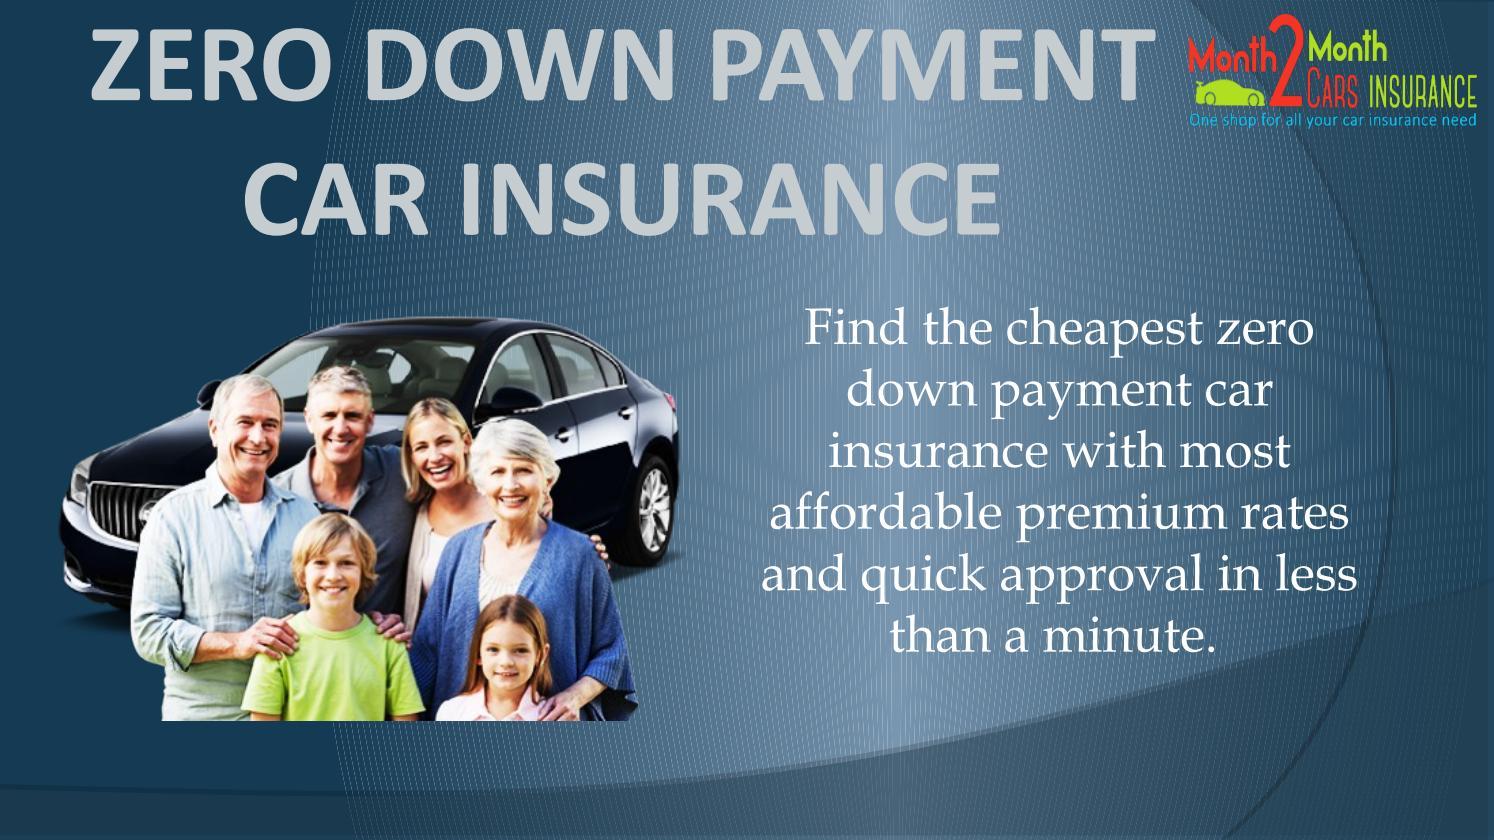 Zero Down Payment Car Insurance Quotes With Affordable Rates By Louis Wilson Issuu